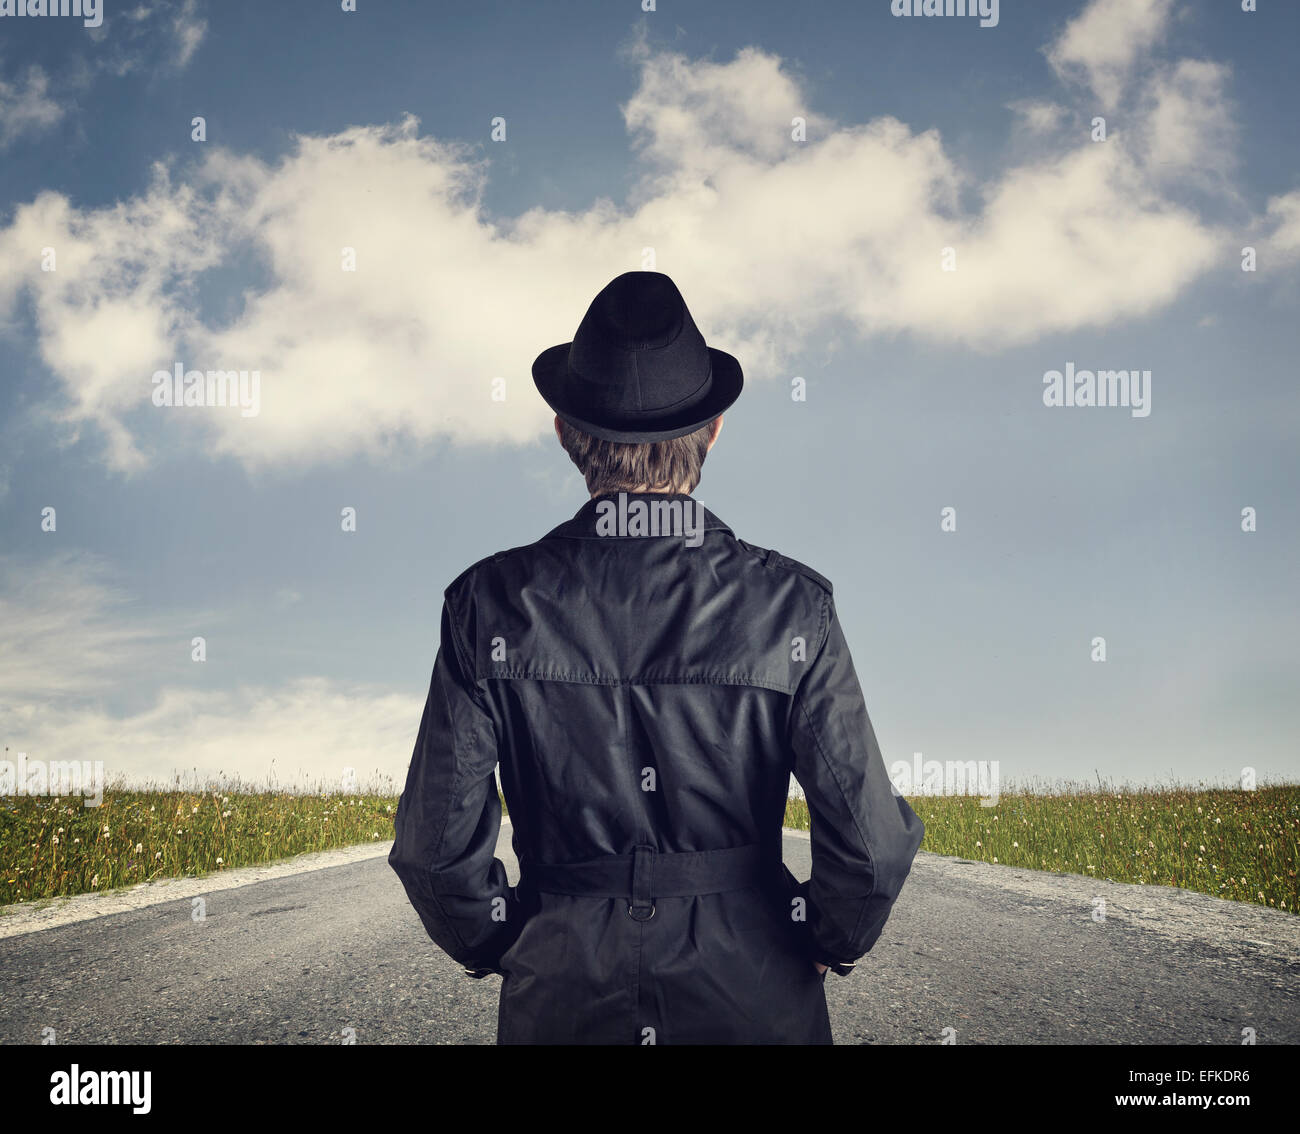 Man in black hat sur la route, sur fond de ciel bleu nuageux Photo Stock